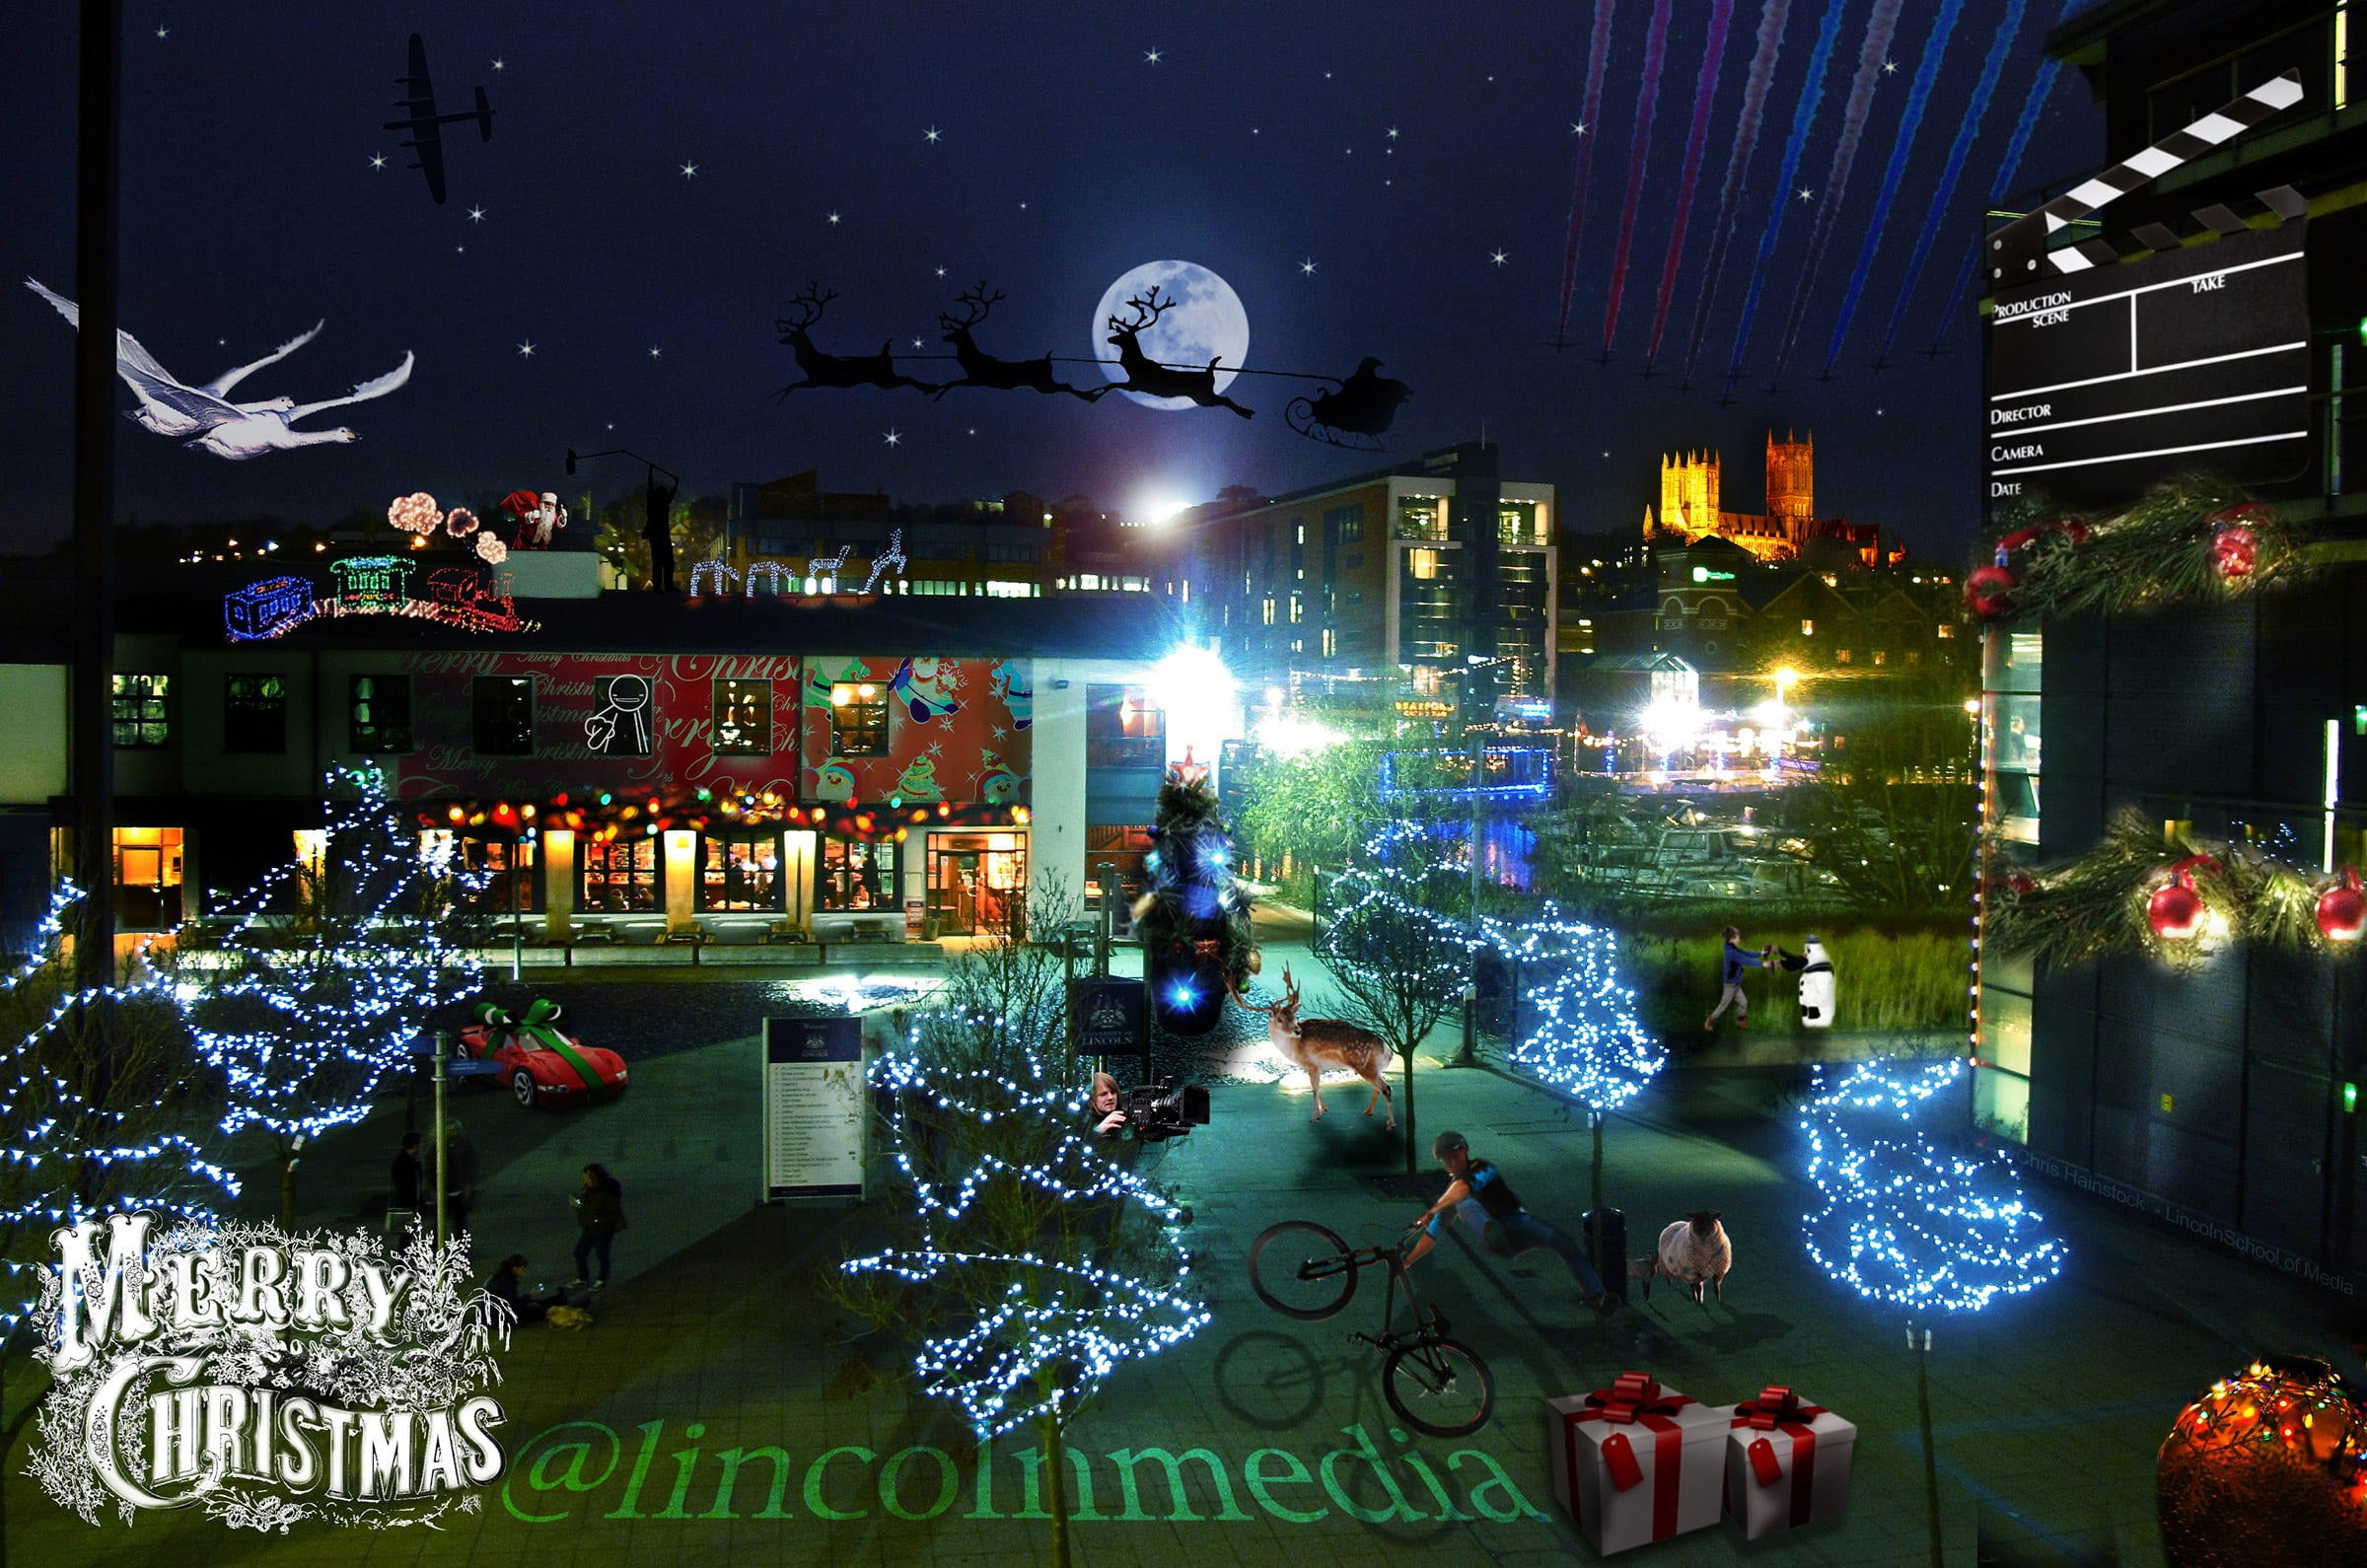 Christmas Greetings To All Our Alumni Lincoln School Of Film